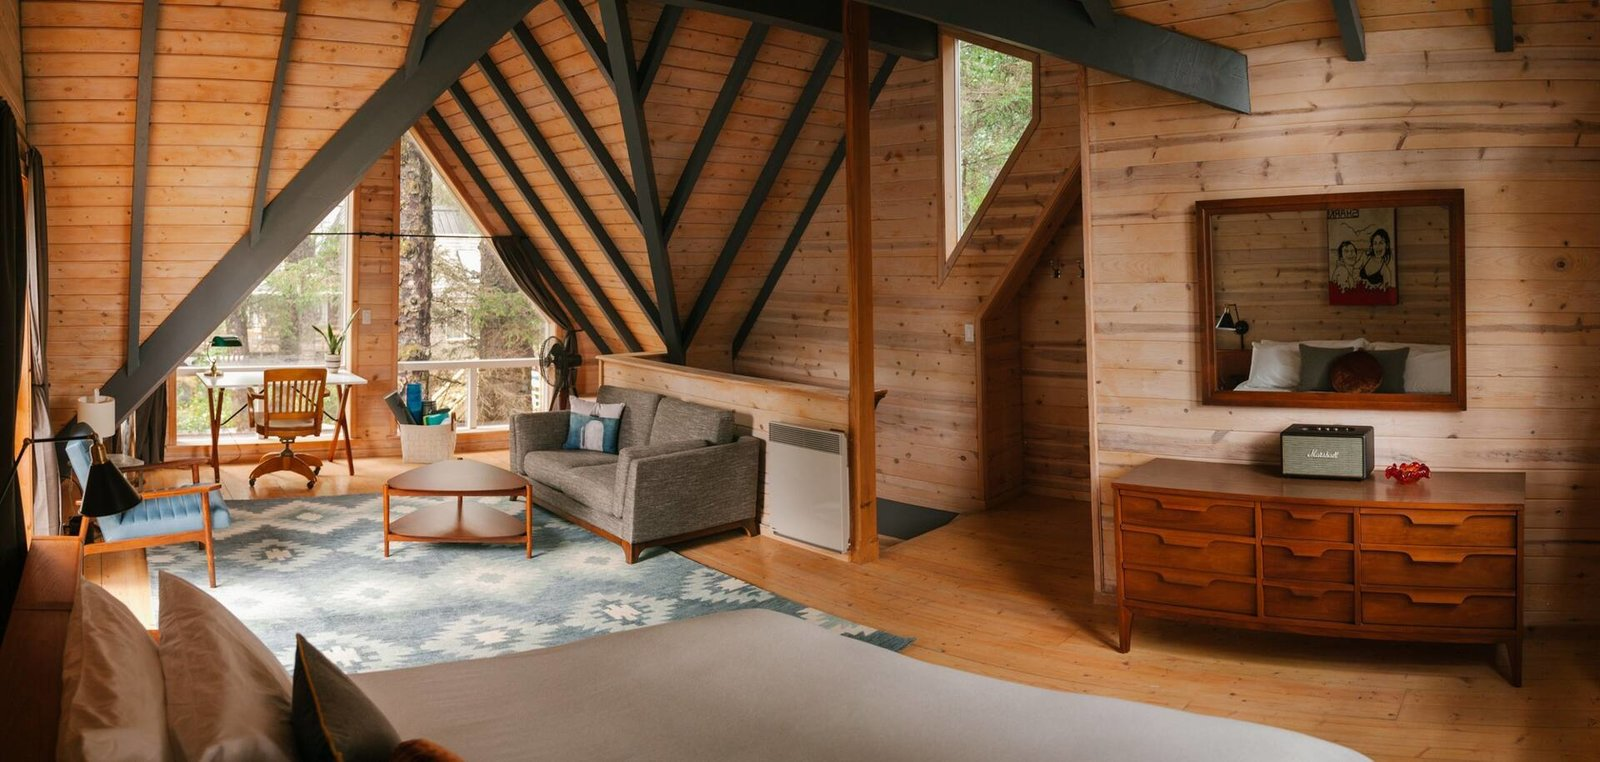 Photo 1 of 18 in 17 Dreamy and Rentable Retreats for a Pacific Northwest Escape